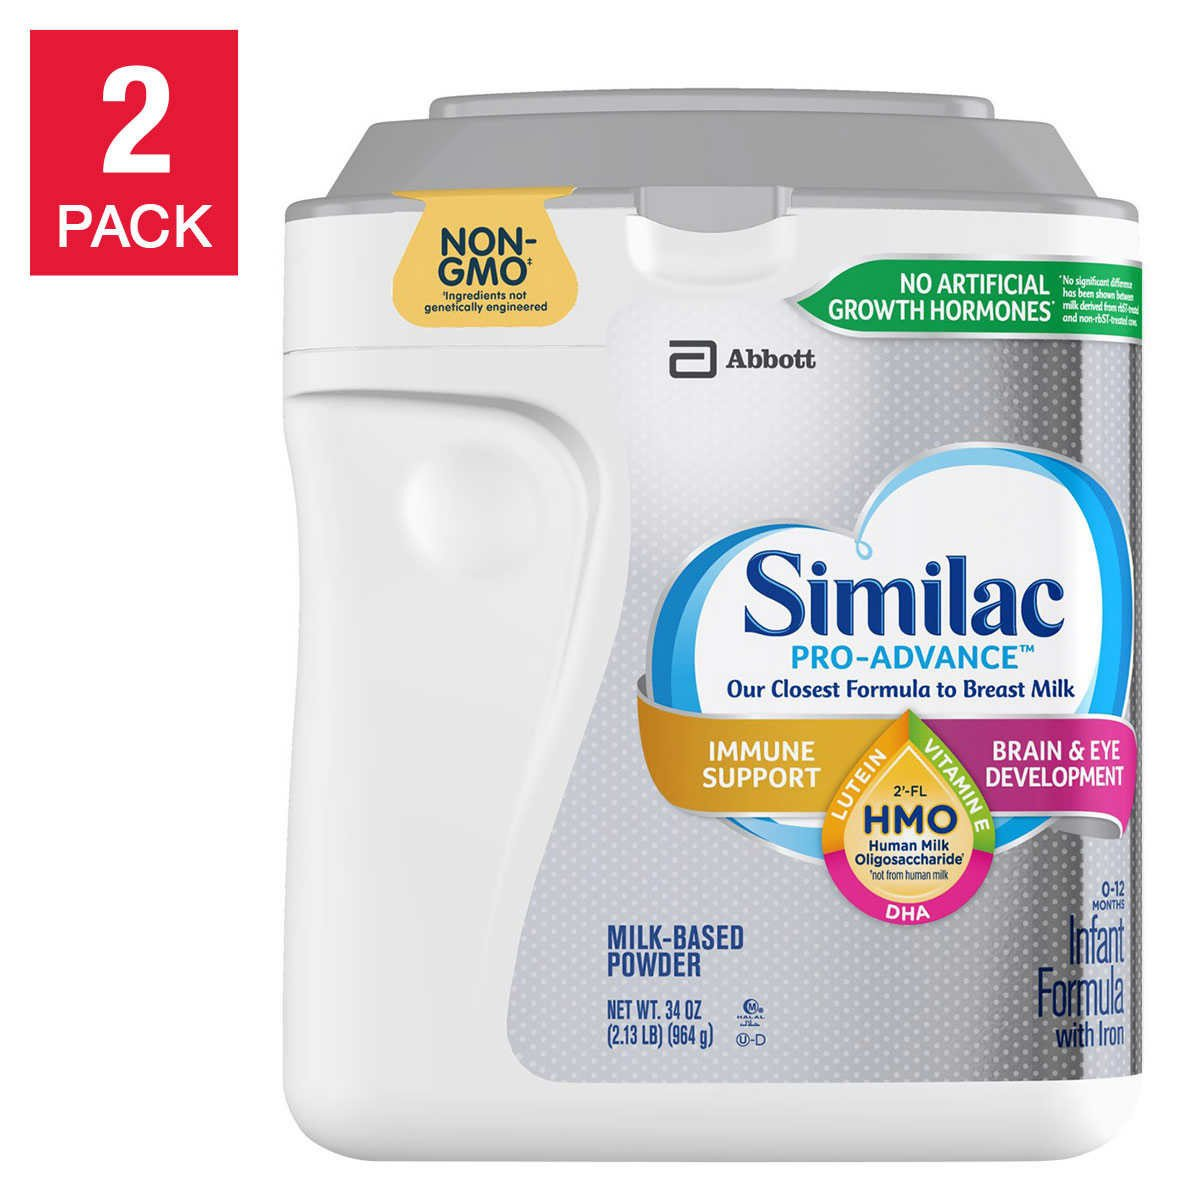 Costco Bedroom Furniture Reviews Unique Similac Pro Advance Hmo Infant formula 34 Oz 2 Count